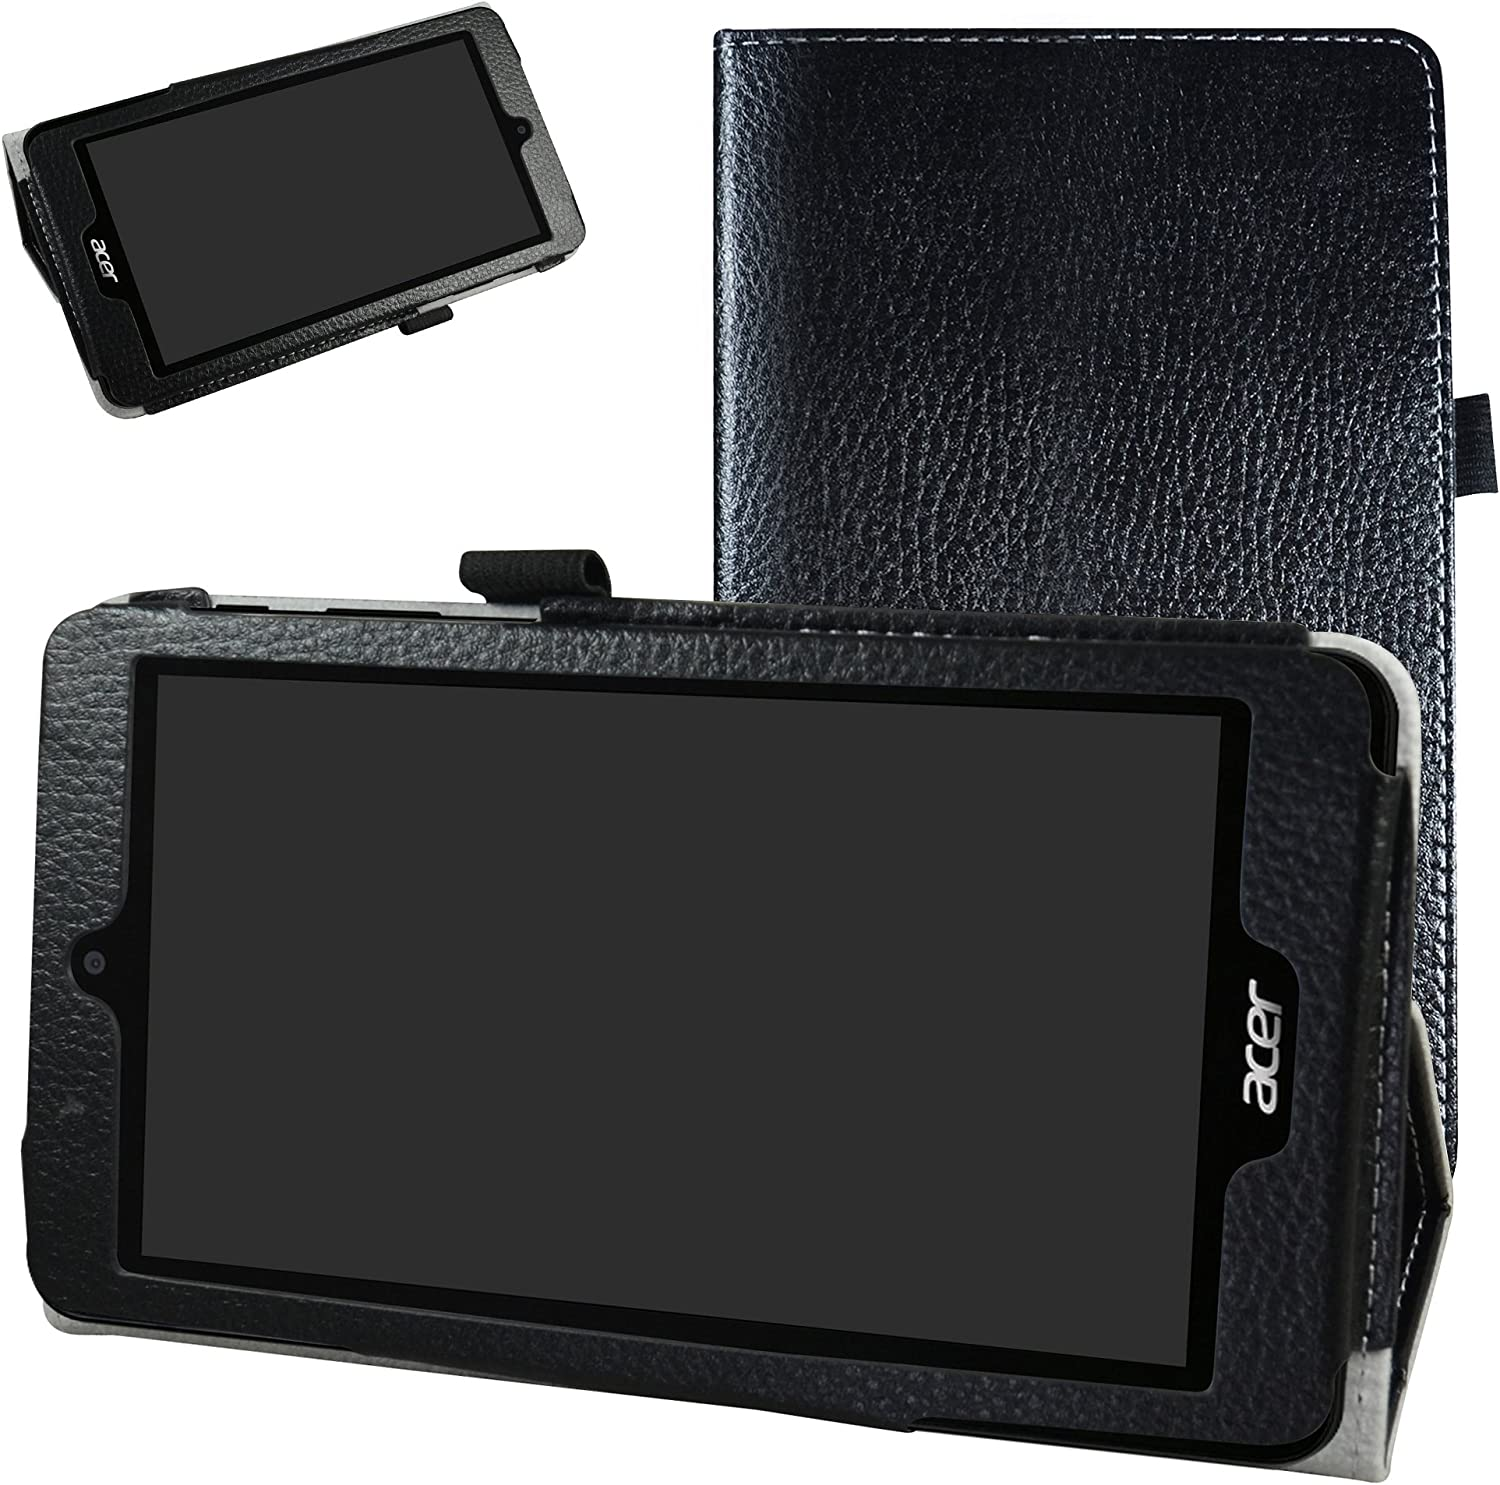 "Acer B1-780 / B1-790 Case,Mama Mouth PU Leather Folio 2-Folding Stand Cover with Stylus Holder for 7"" Acer Iconia One 7 B1-780 / Iconia One 7 B1-790 Android Tablet,Black"